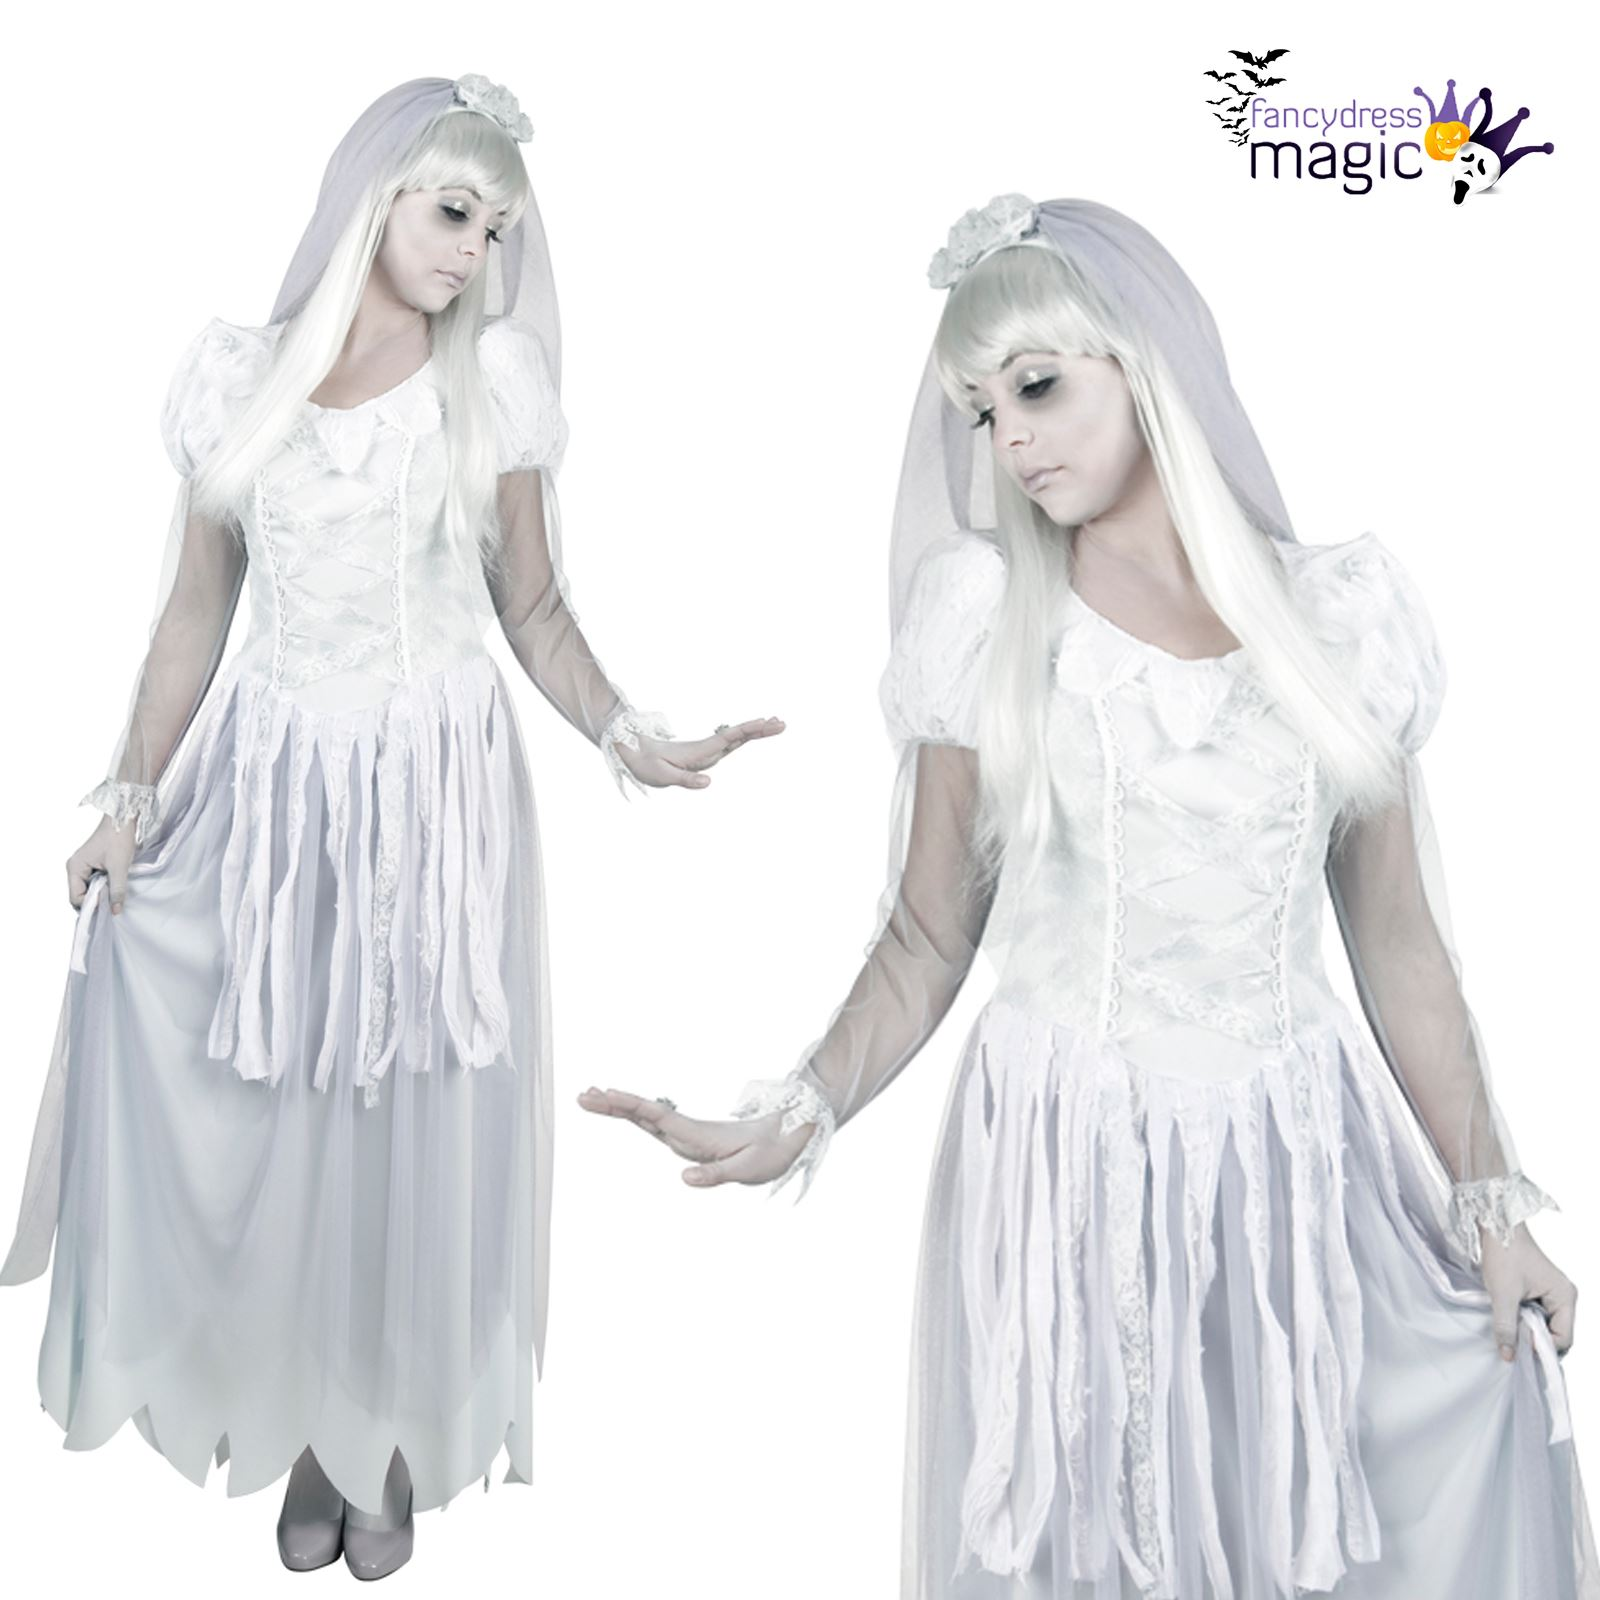 c3ef81886a5d Ladies Mens Couples Halloween White Ghost Bride Groom Fancy Dress Costume  Outfit